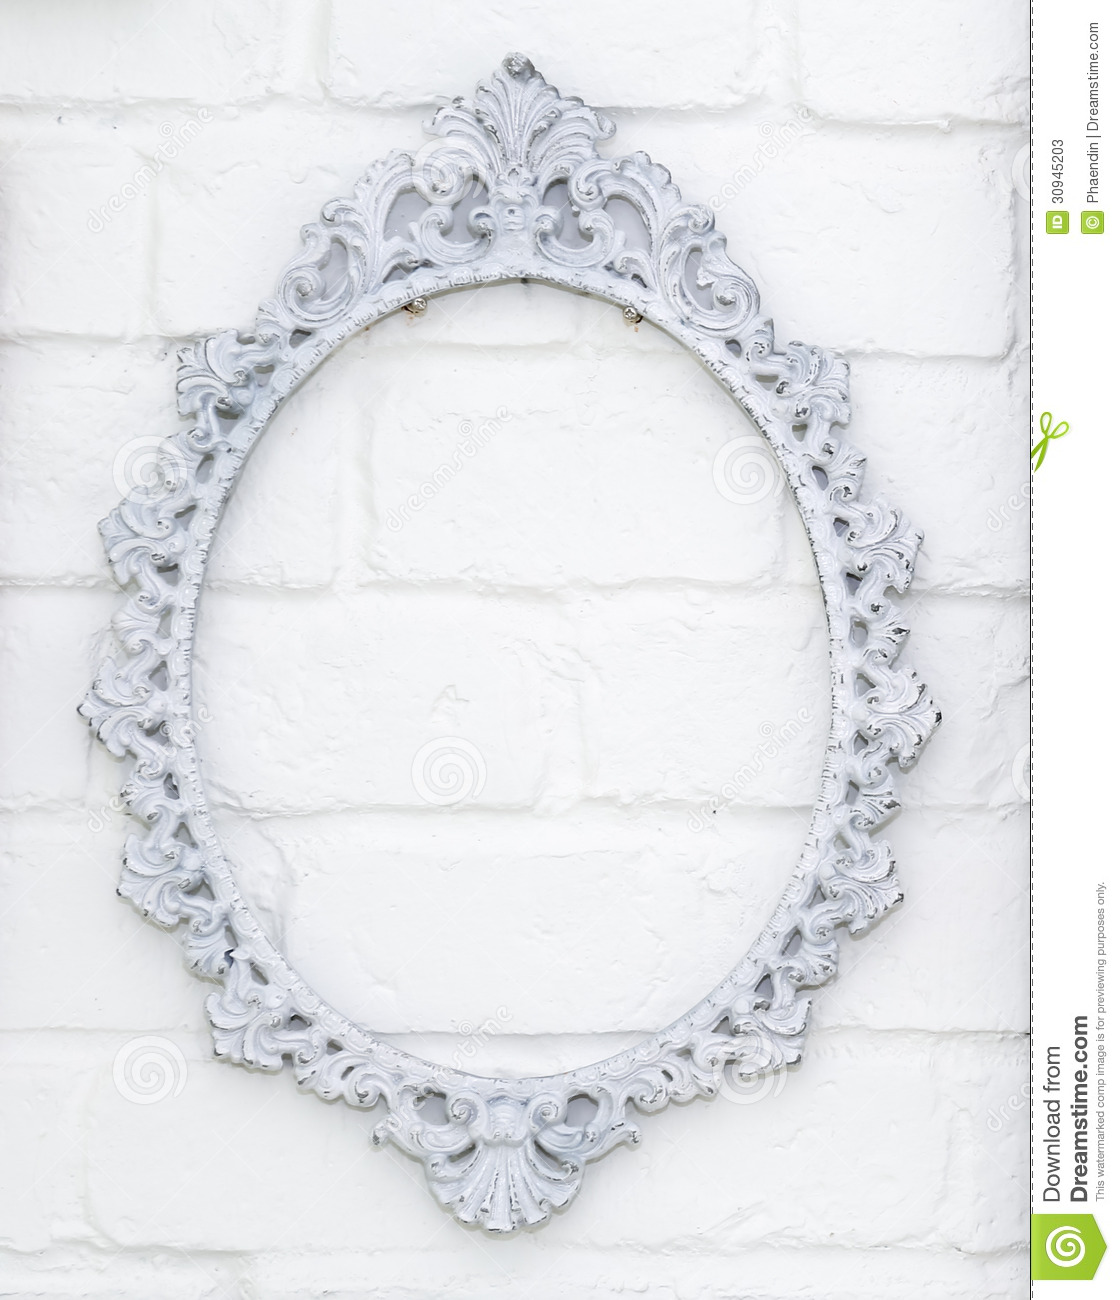 vintage picture frame on white brick wall - White Vintage Picture Frames